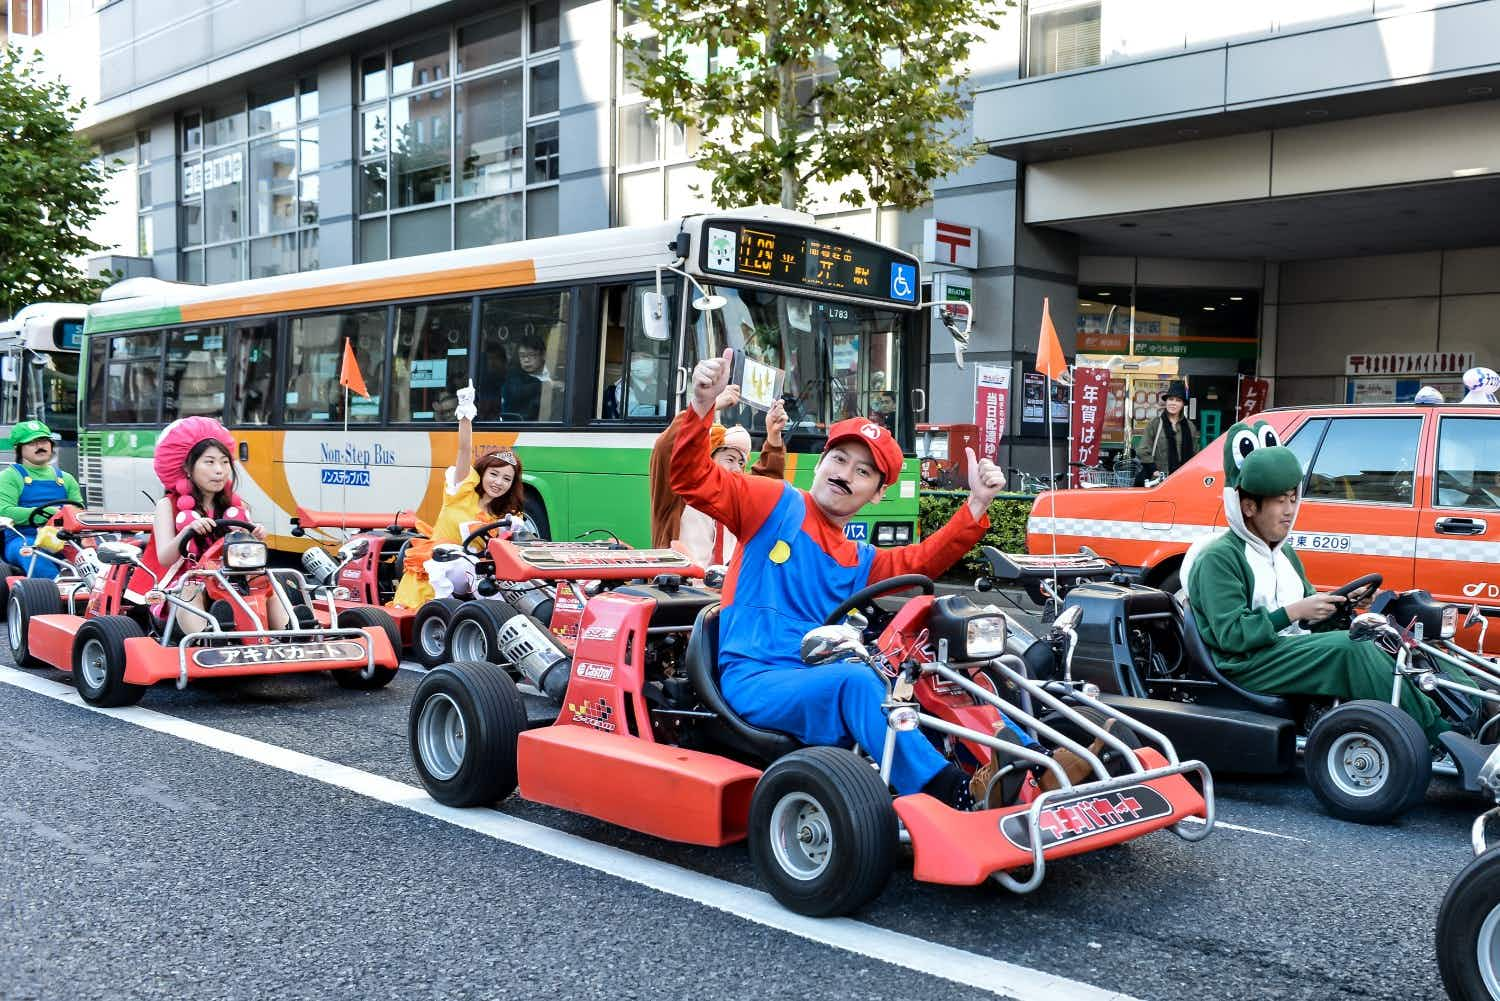 Tour a Japanese city in a go-kart dressed as a Super Mario character